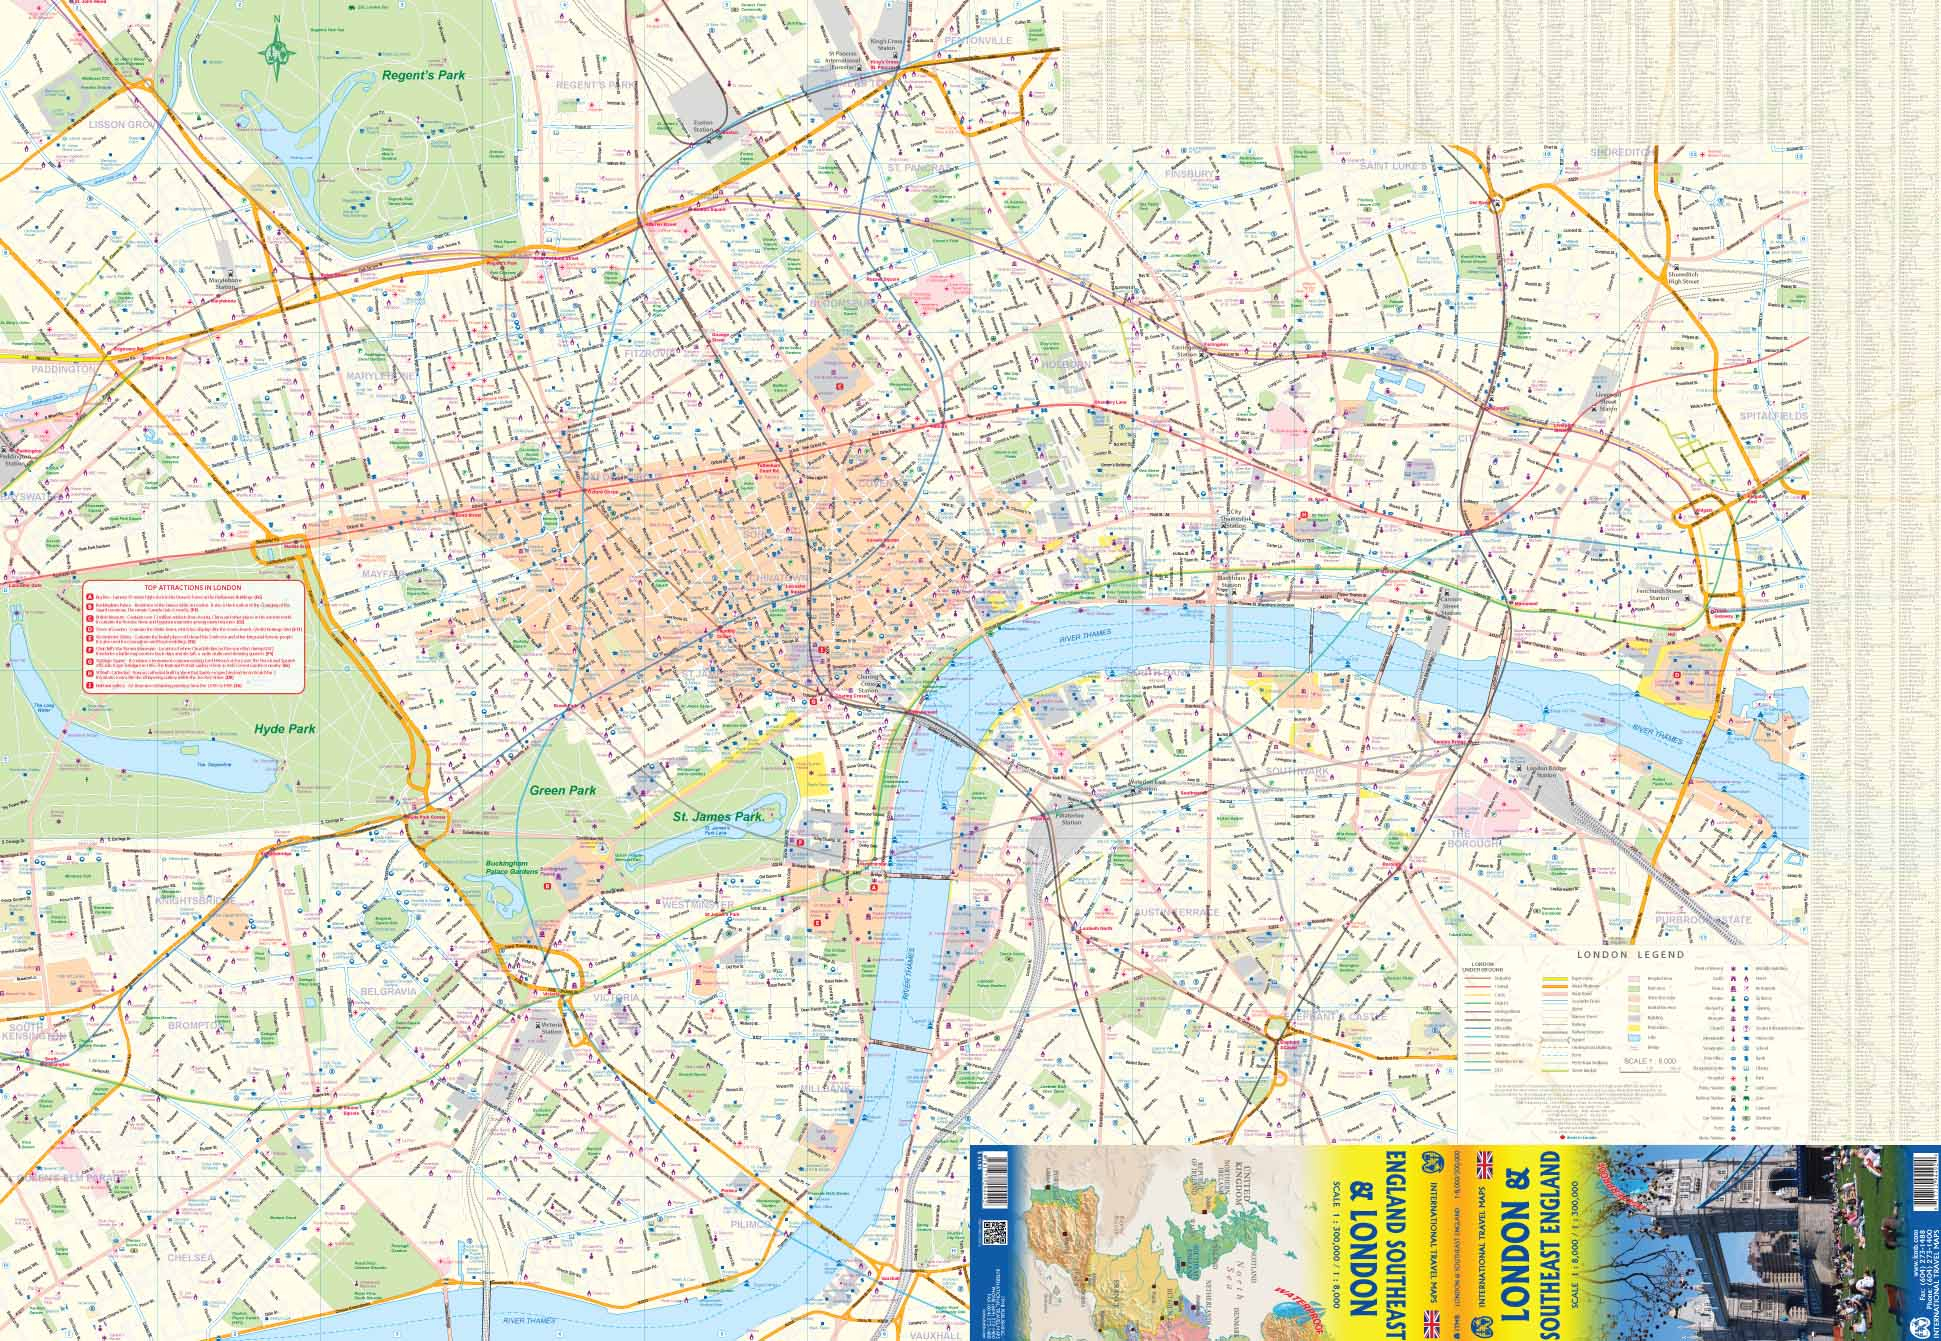 London England City Map.London City South East England Travel Map